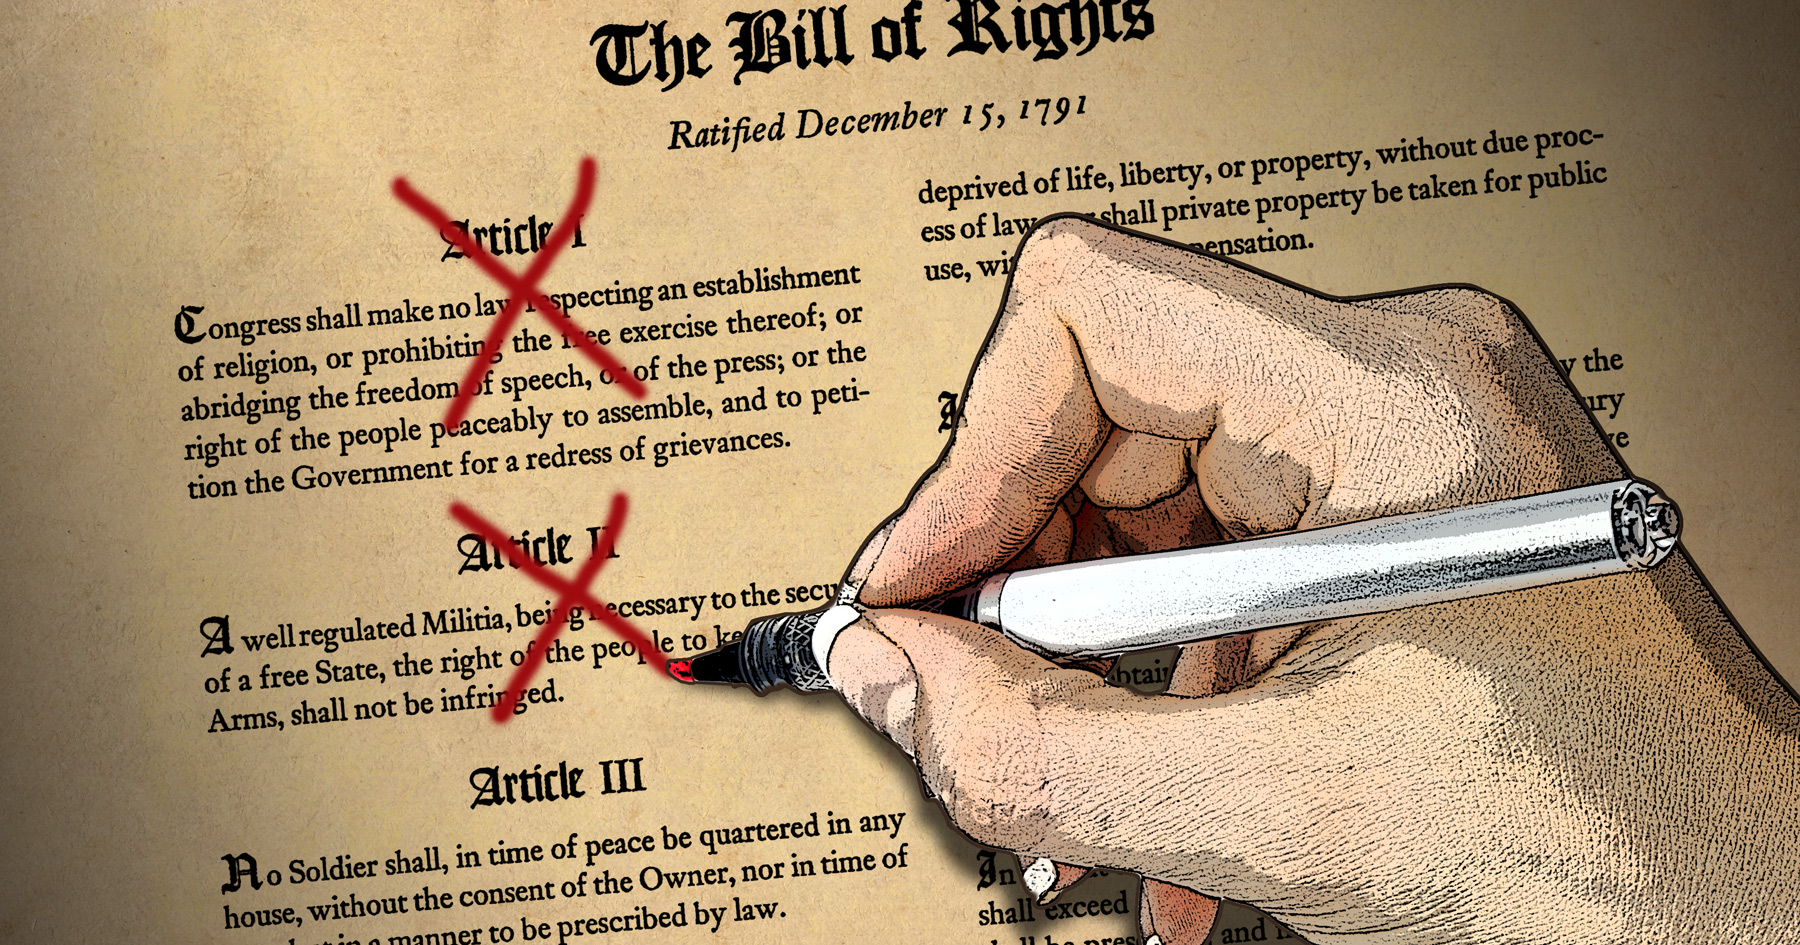 Bill of Rights, Ten Amendments, Freedom of Speech, Bear Arms, Common Sense